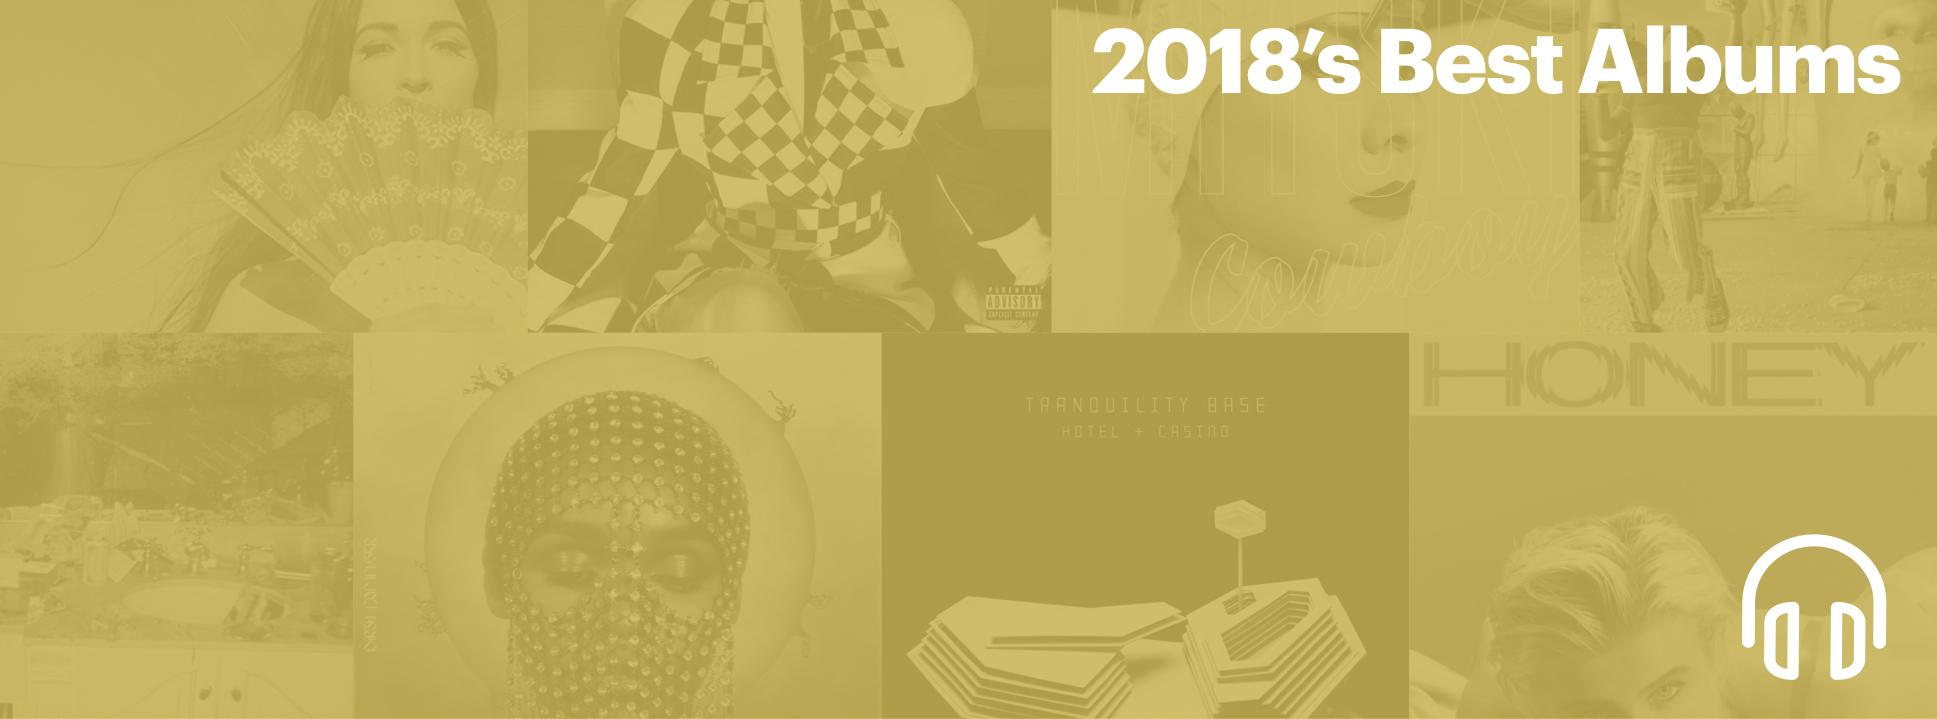 The Top 10 Albums Of 2018, According To Everyone